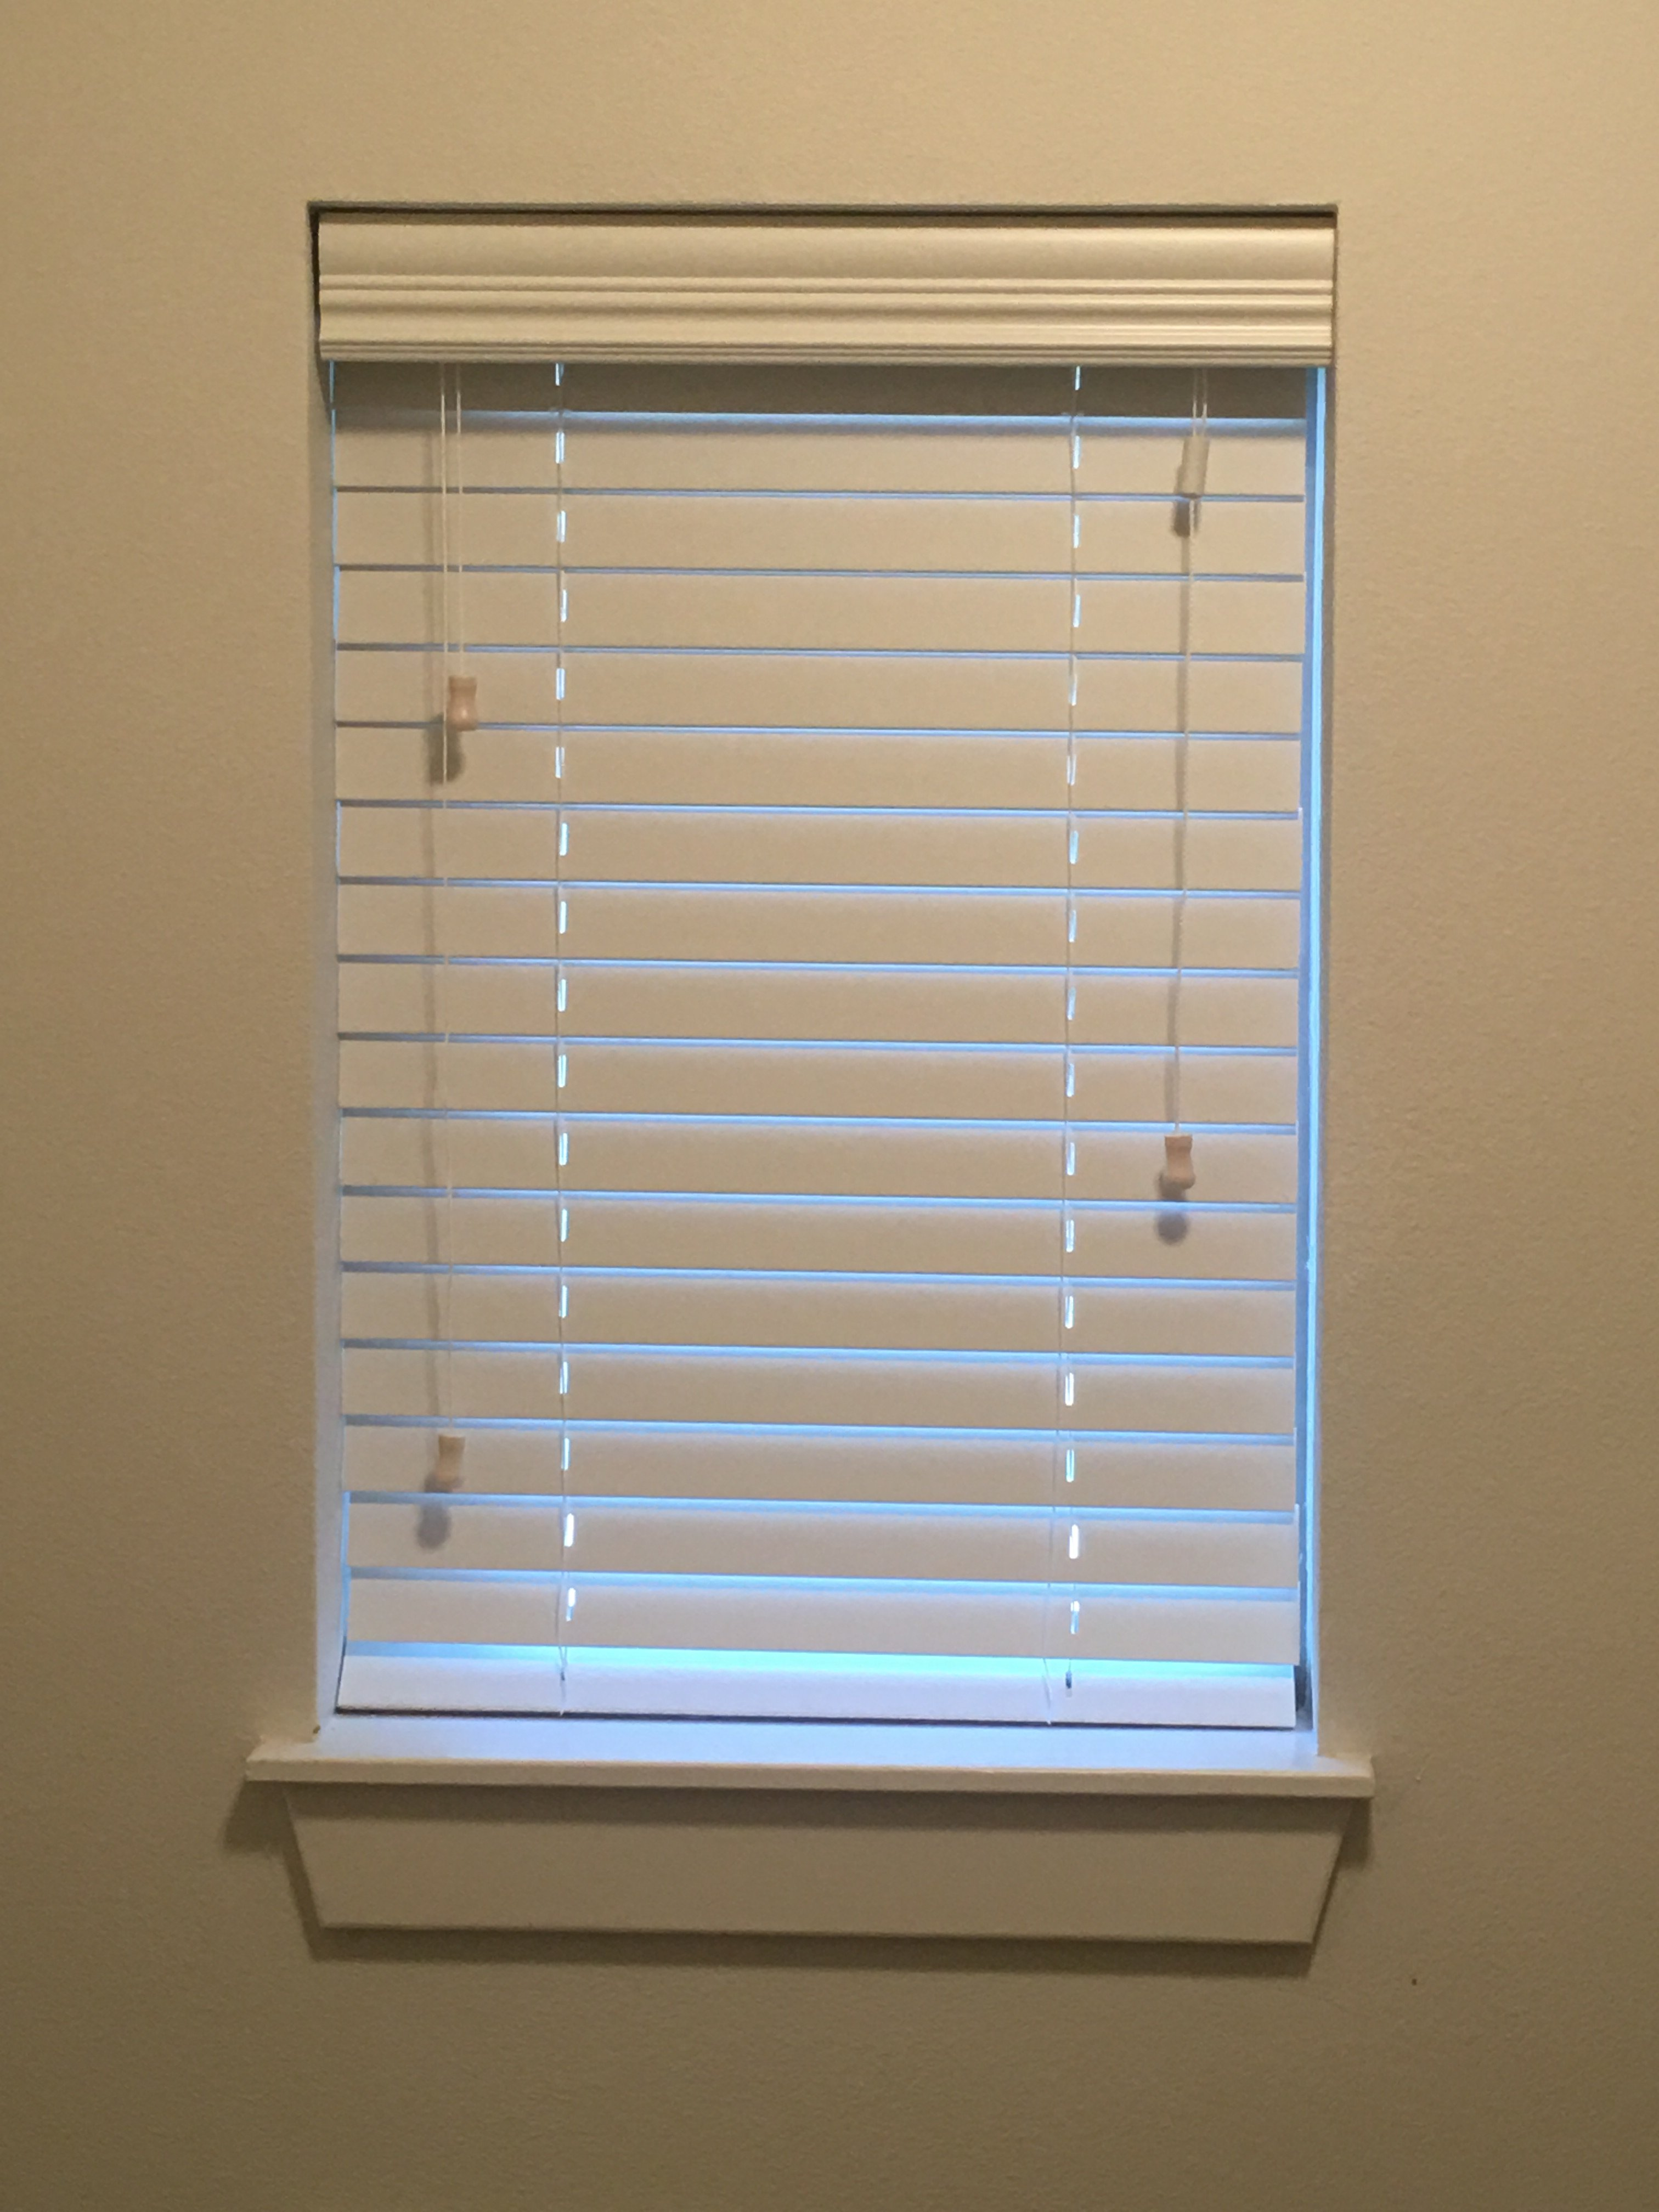 inc replacement parts window coverings journalindahjuli wood mice com x marvelous blinds blind faux